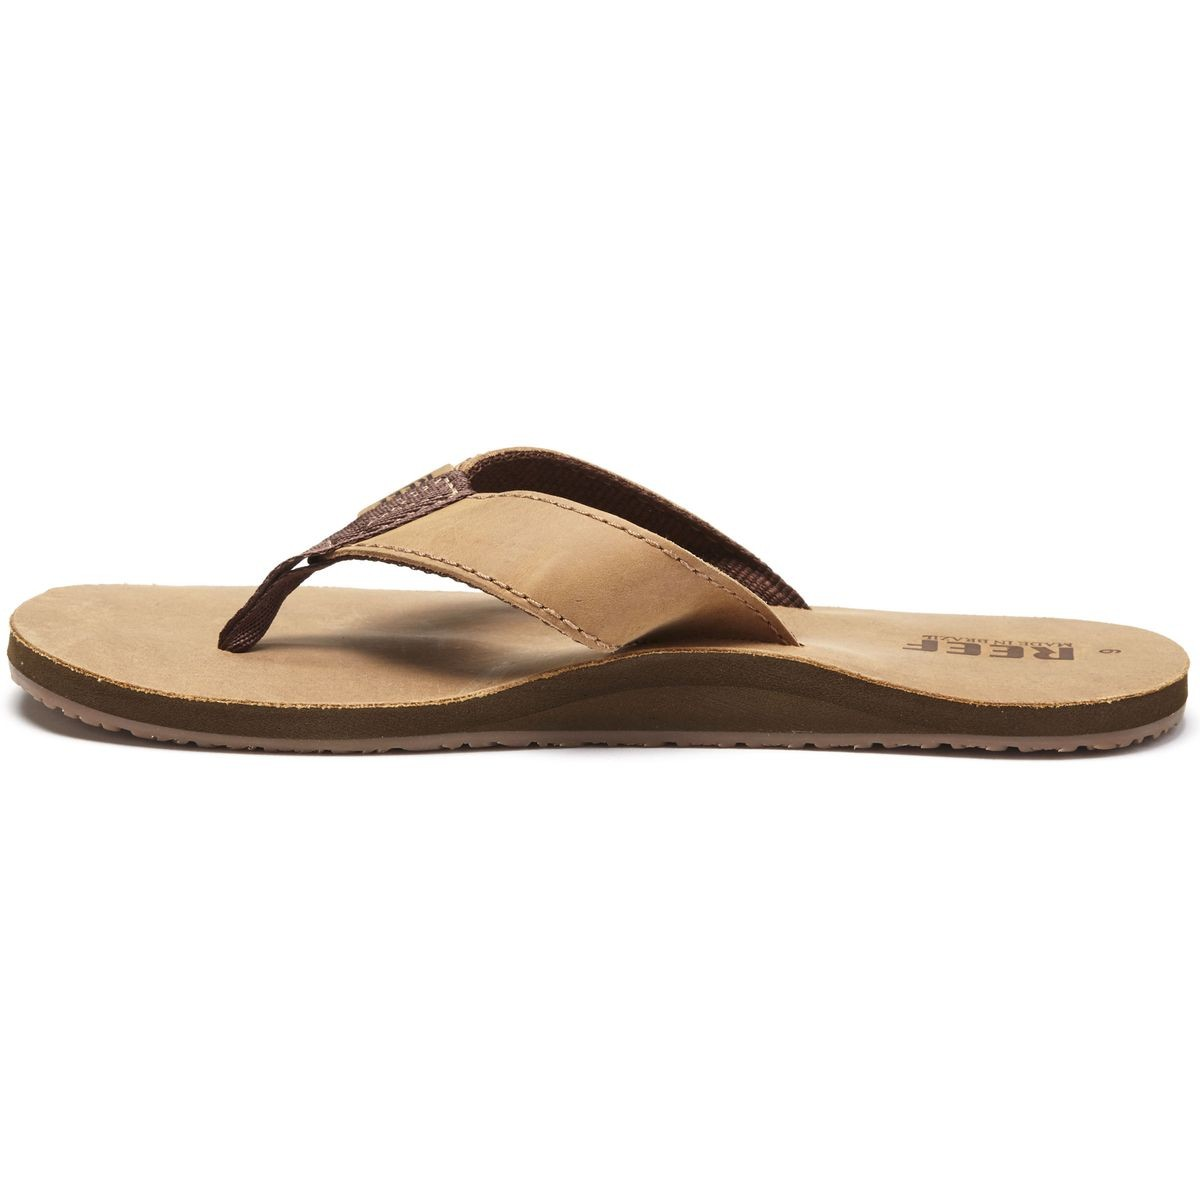 99248e2e78ed Reef Leather Smoothy Sandals - Bronze Brown - 10.0